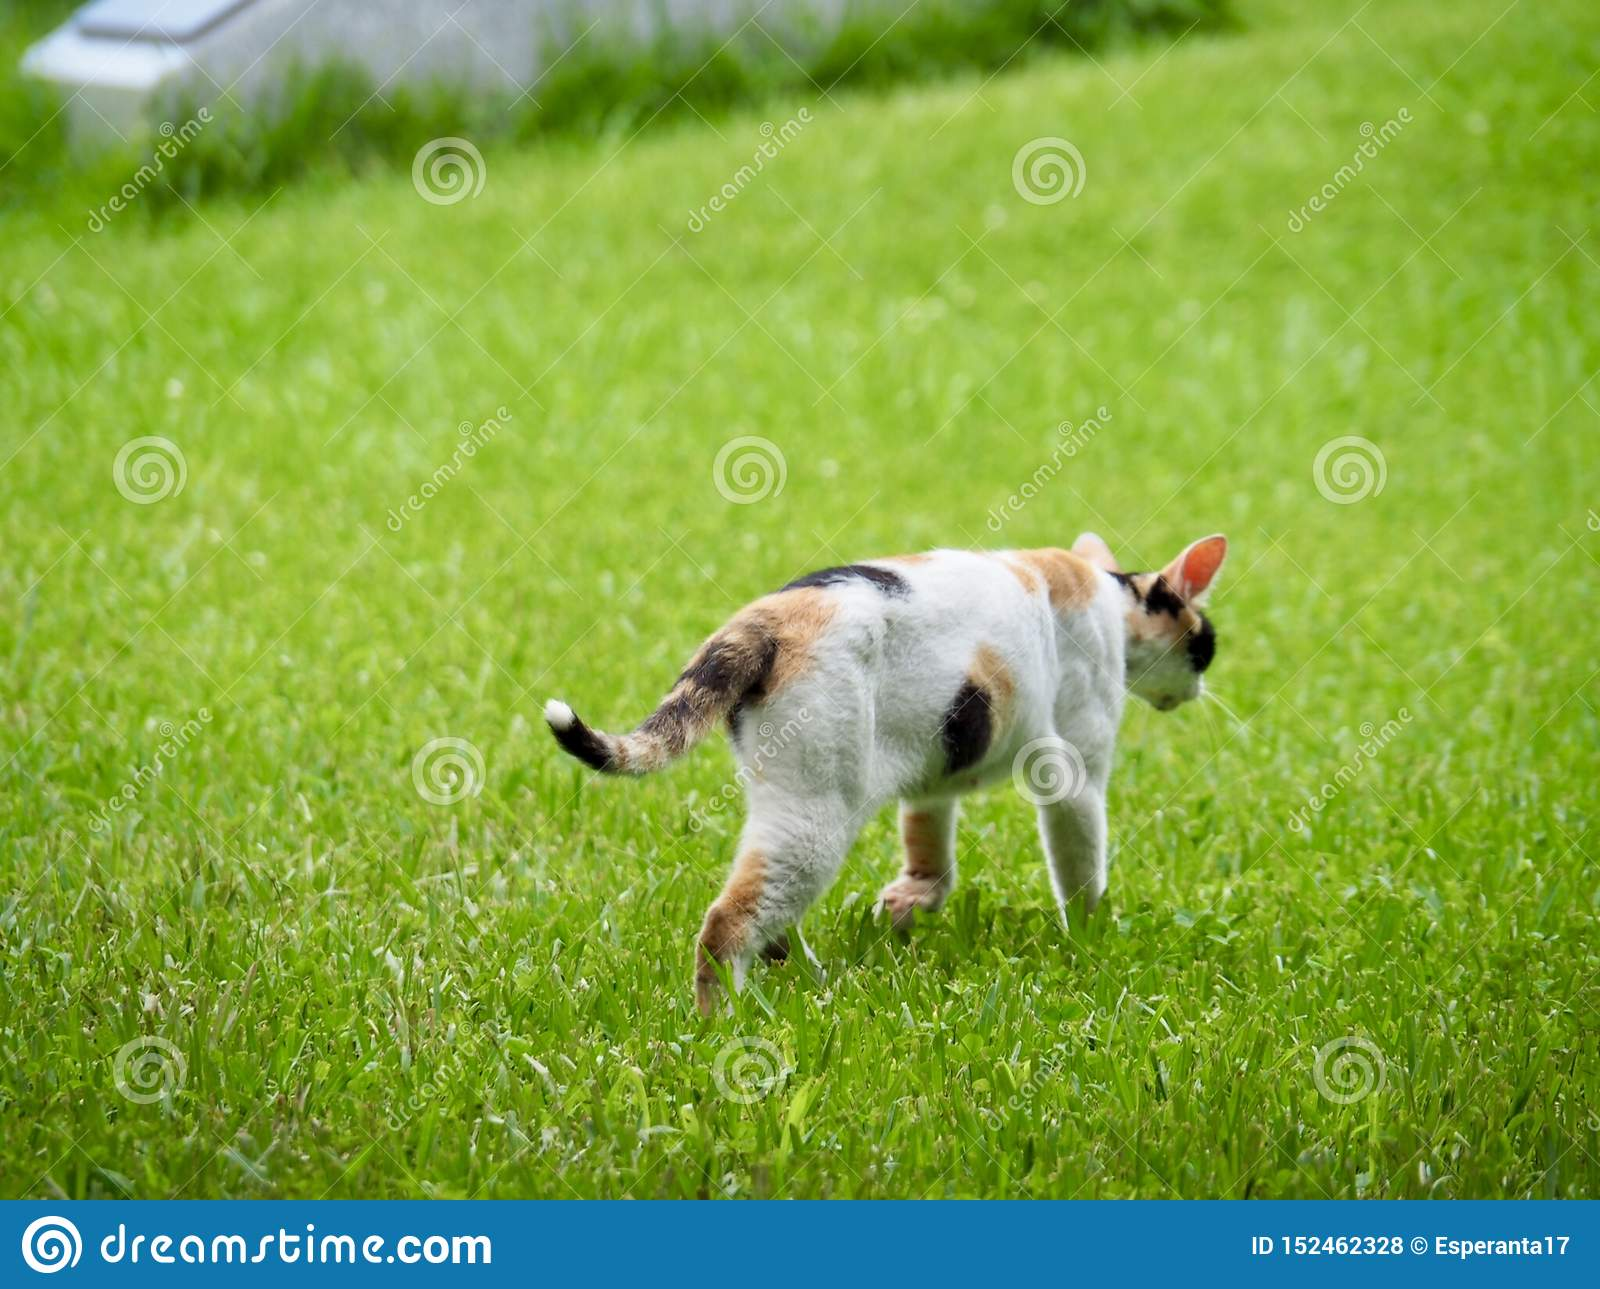 Cat Walking on Green Grass